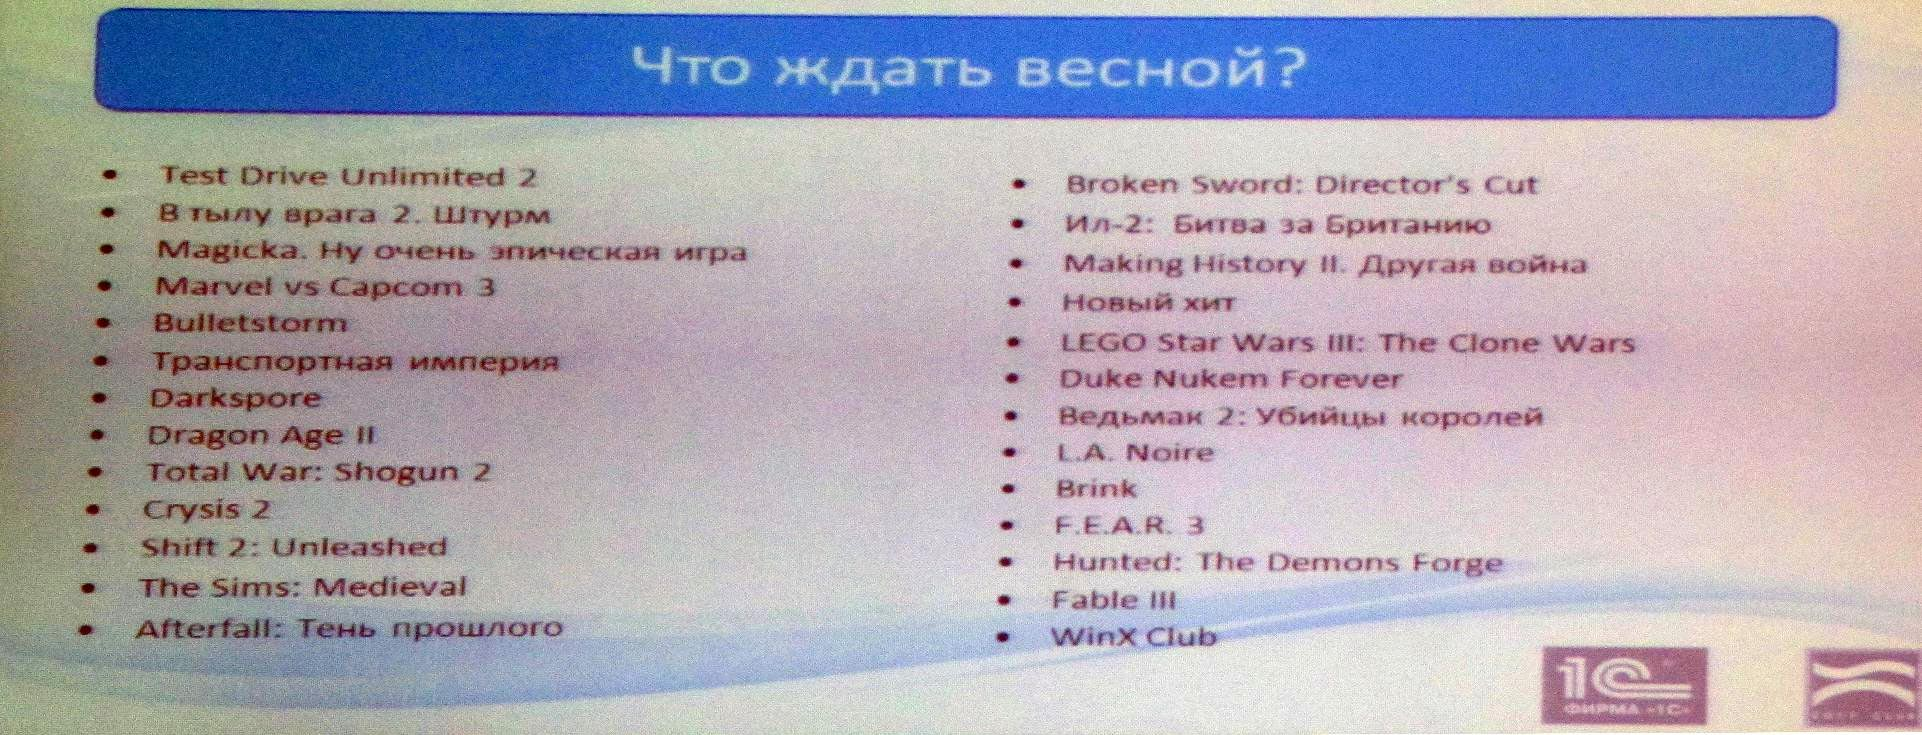 The_Witcher_2_Assassins_o_Kings_Presentation_Kiev_03.jpg